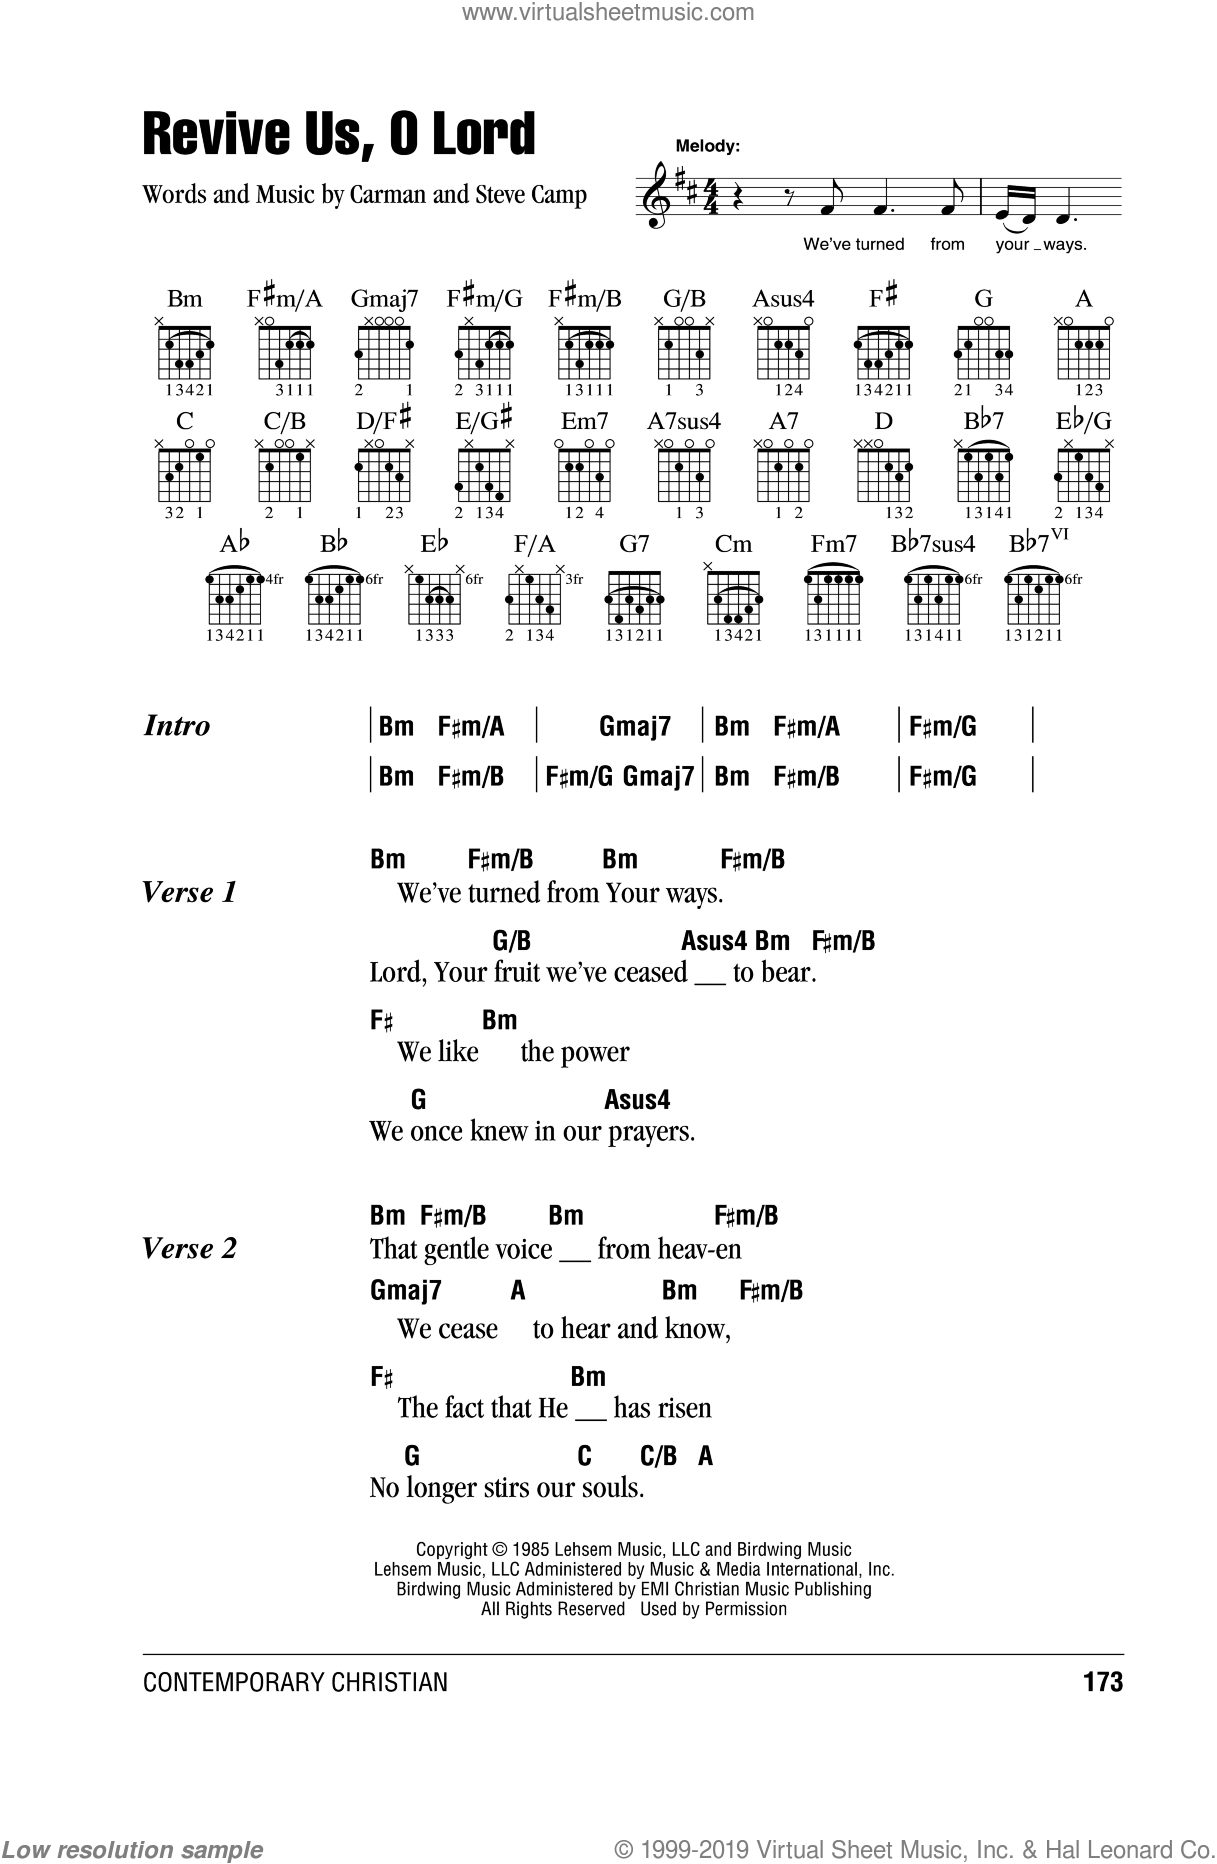 Revive Us, O Lord sheet music for guitar (chords) by Steve Camp and Carman, intermediate skill level